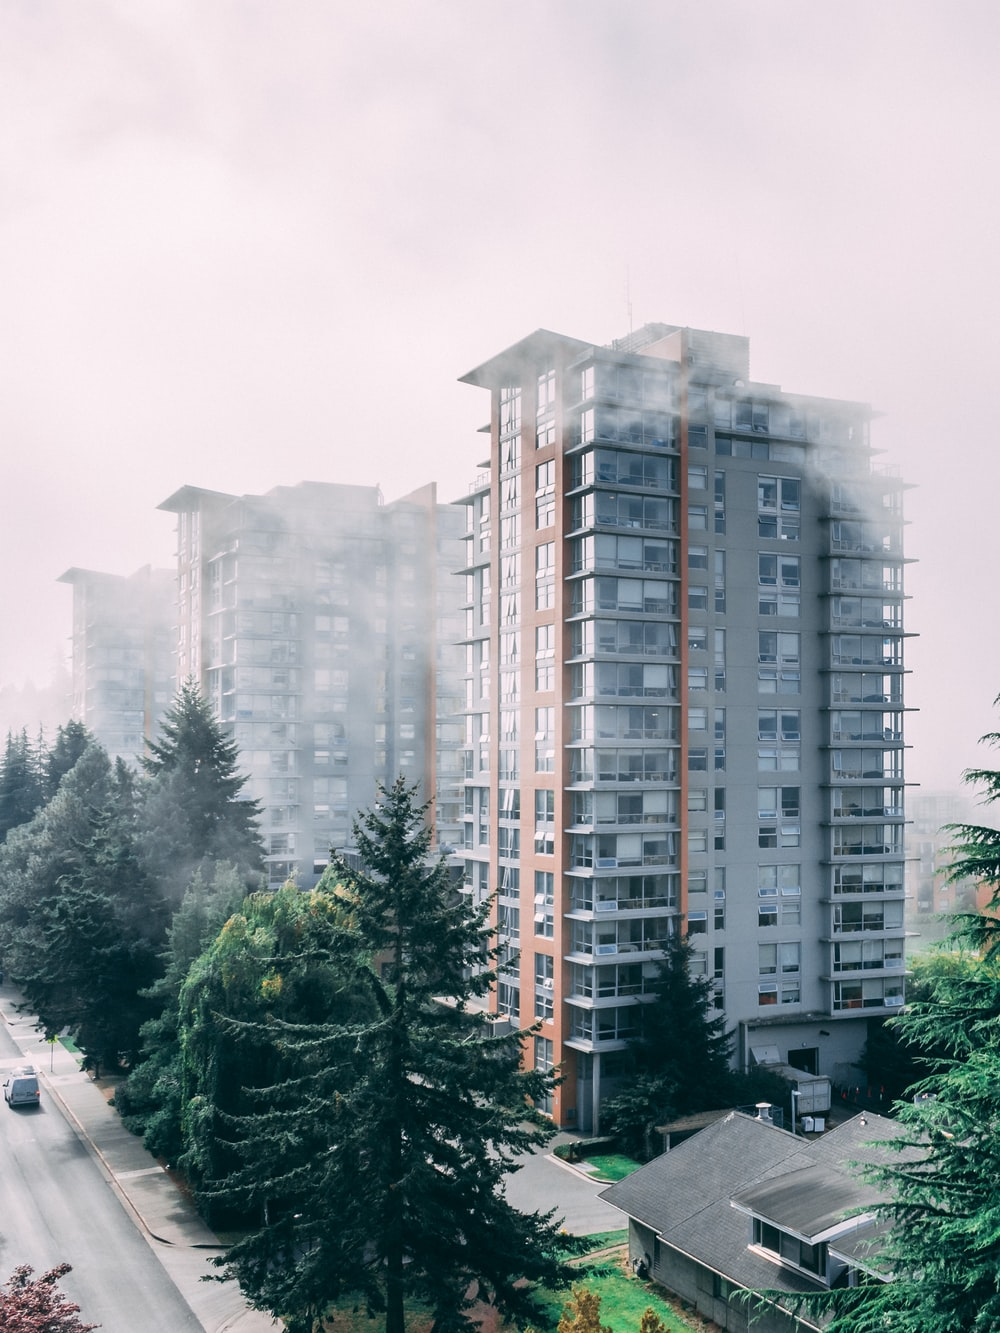 gray and brown building in foggy weather during daytime